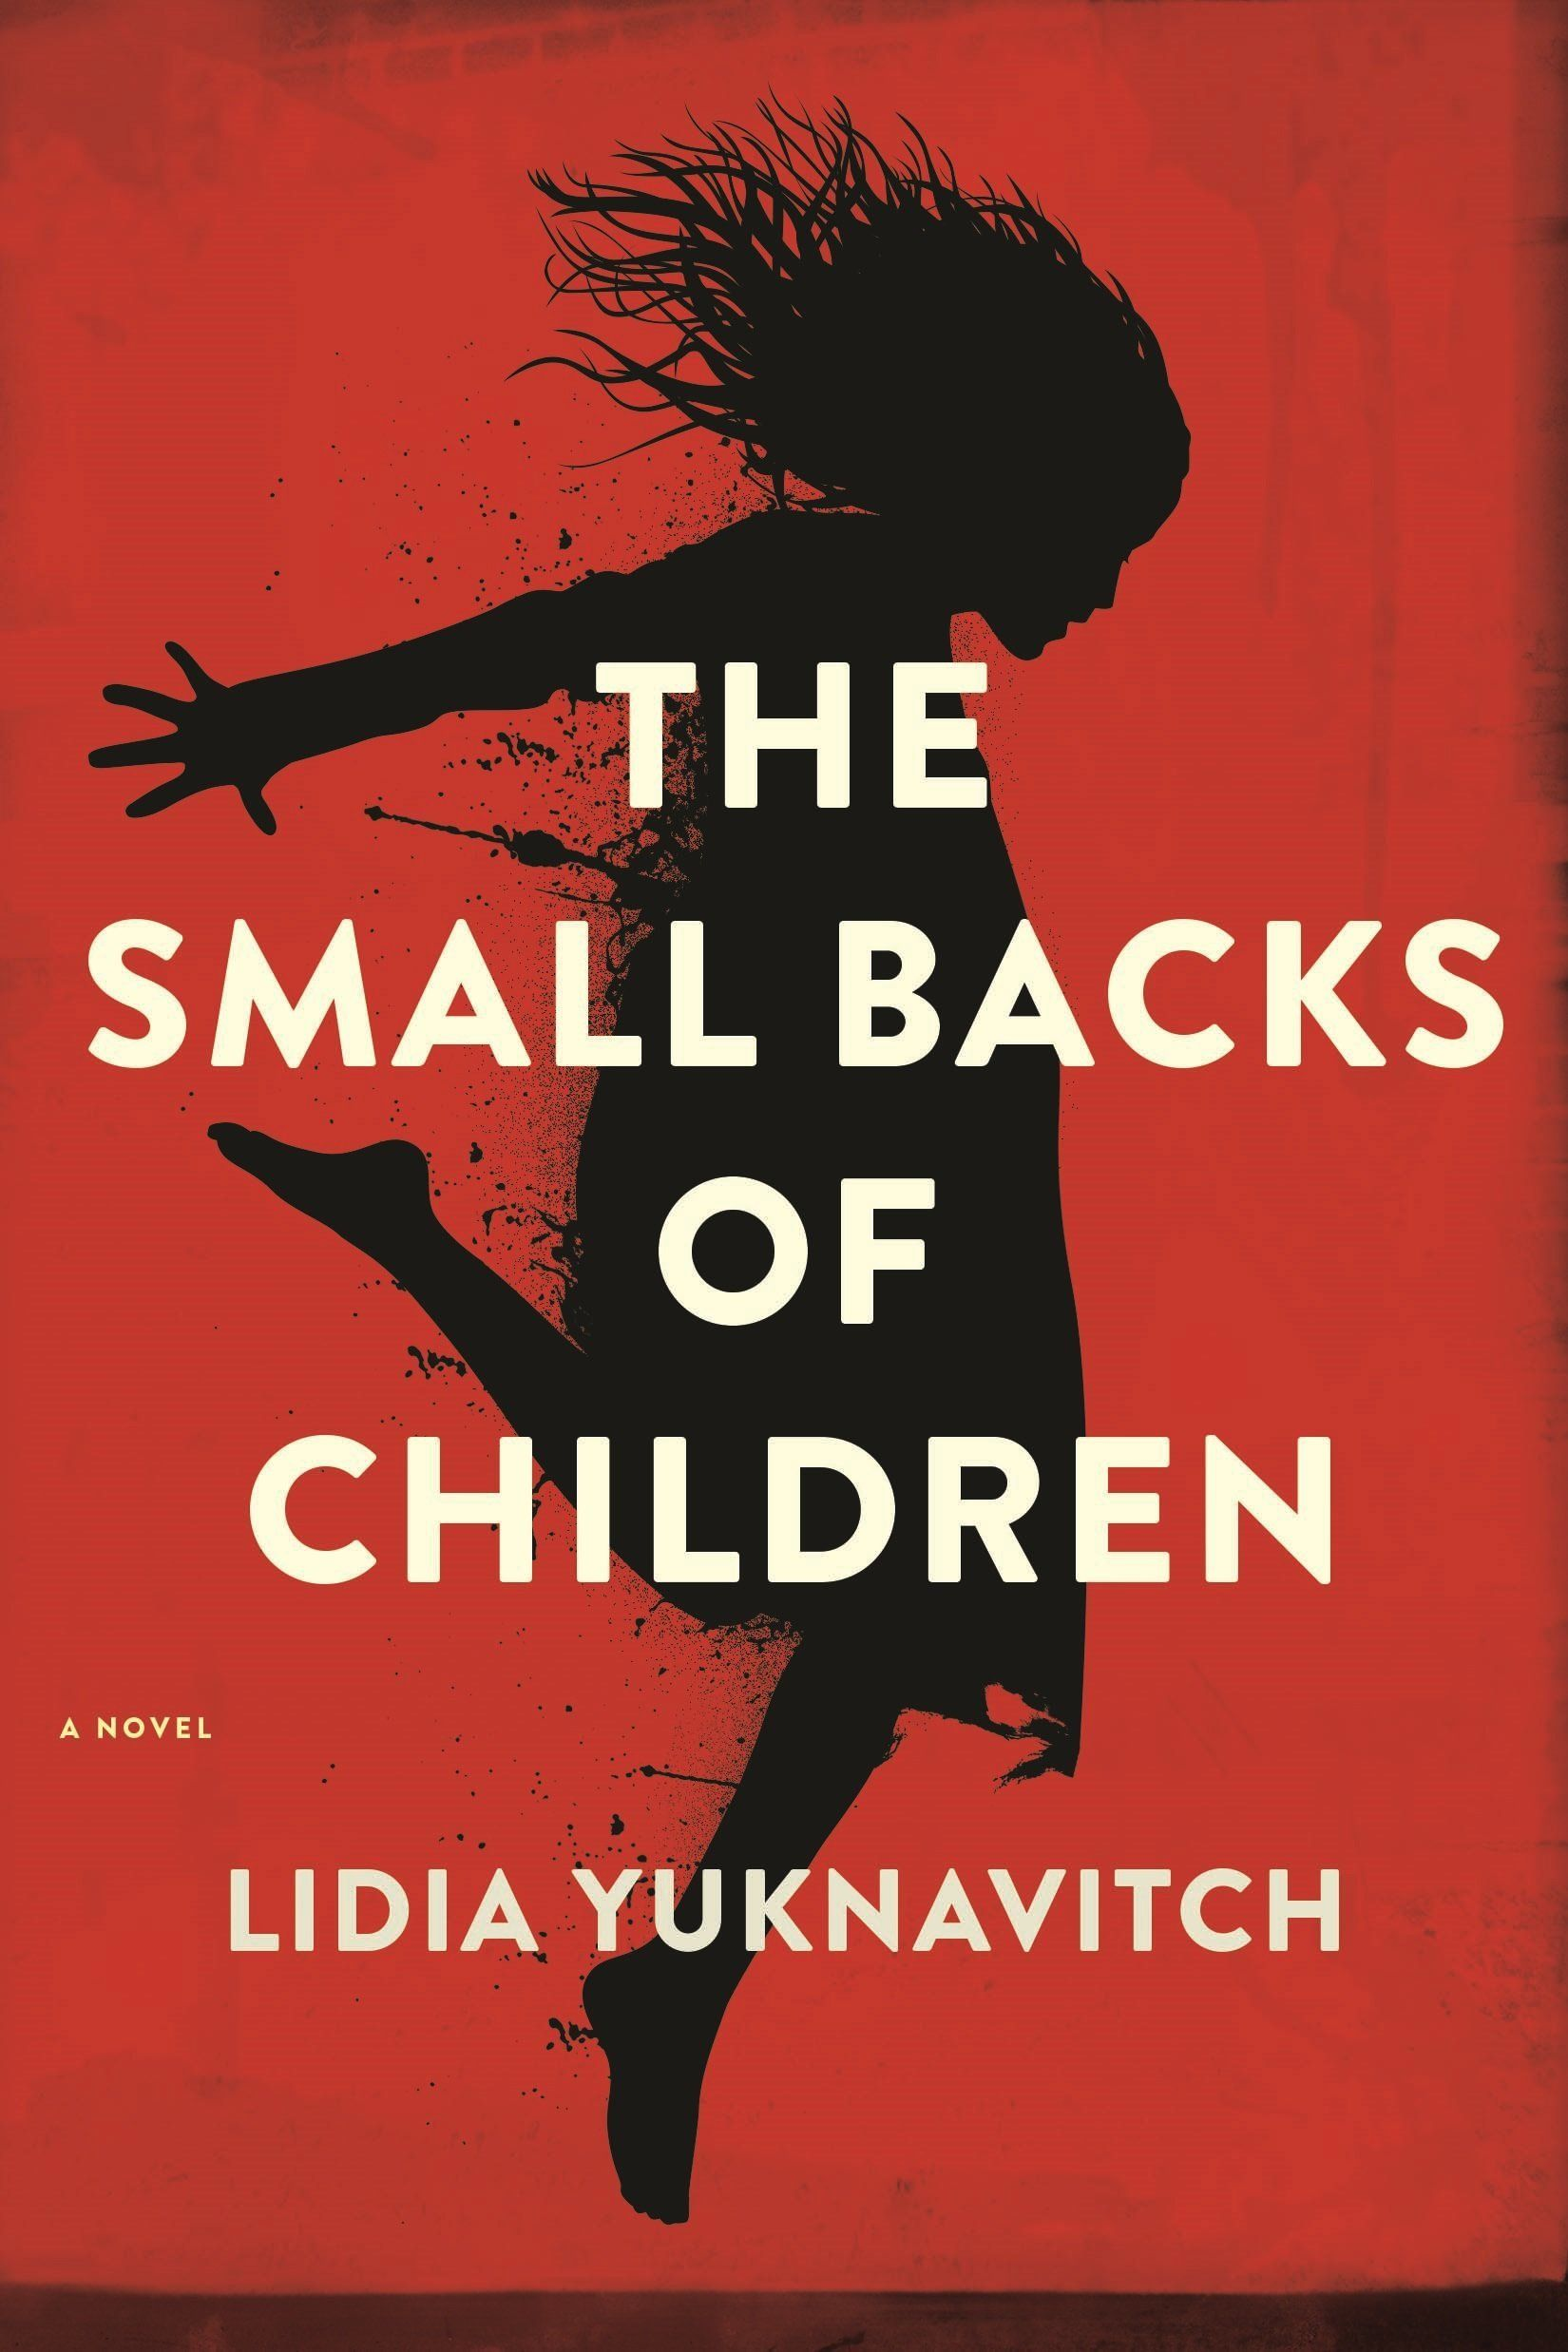 The Small Backs of Children by Lidia Yuknavitch Cover